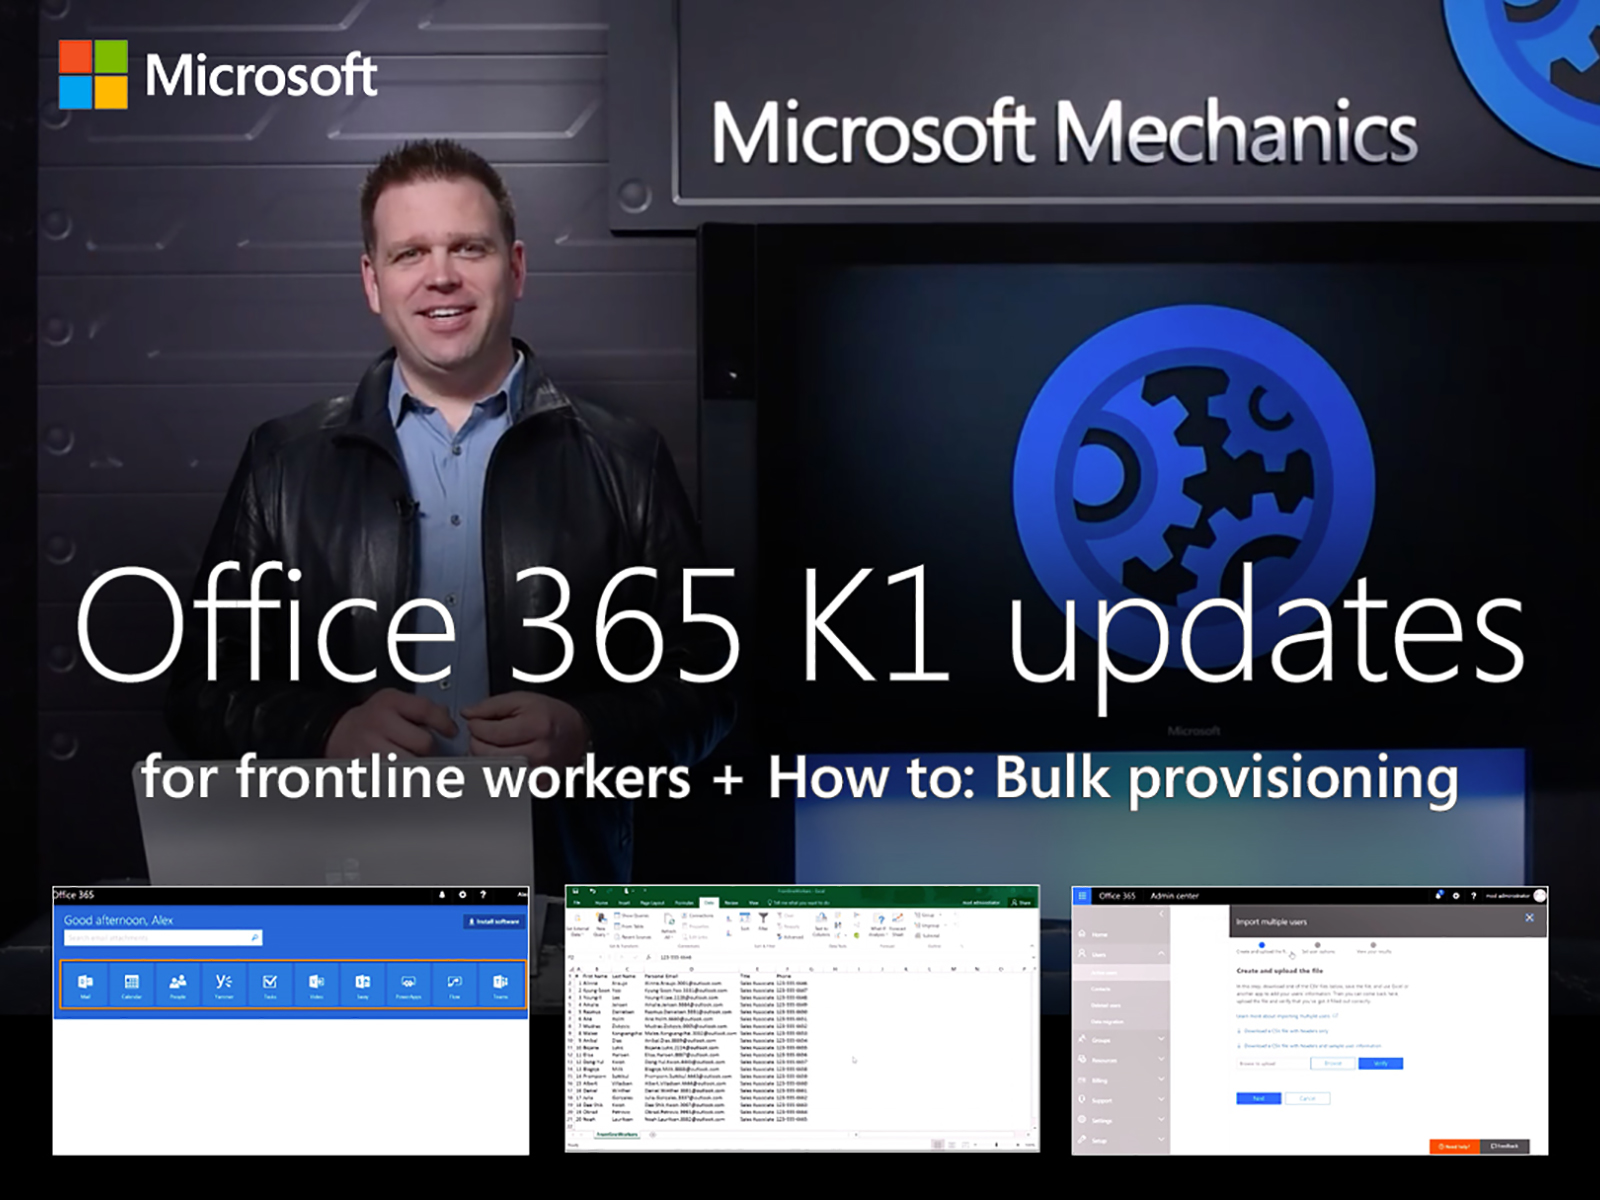 Artwork for Office 365 K1 updates